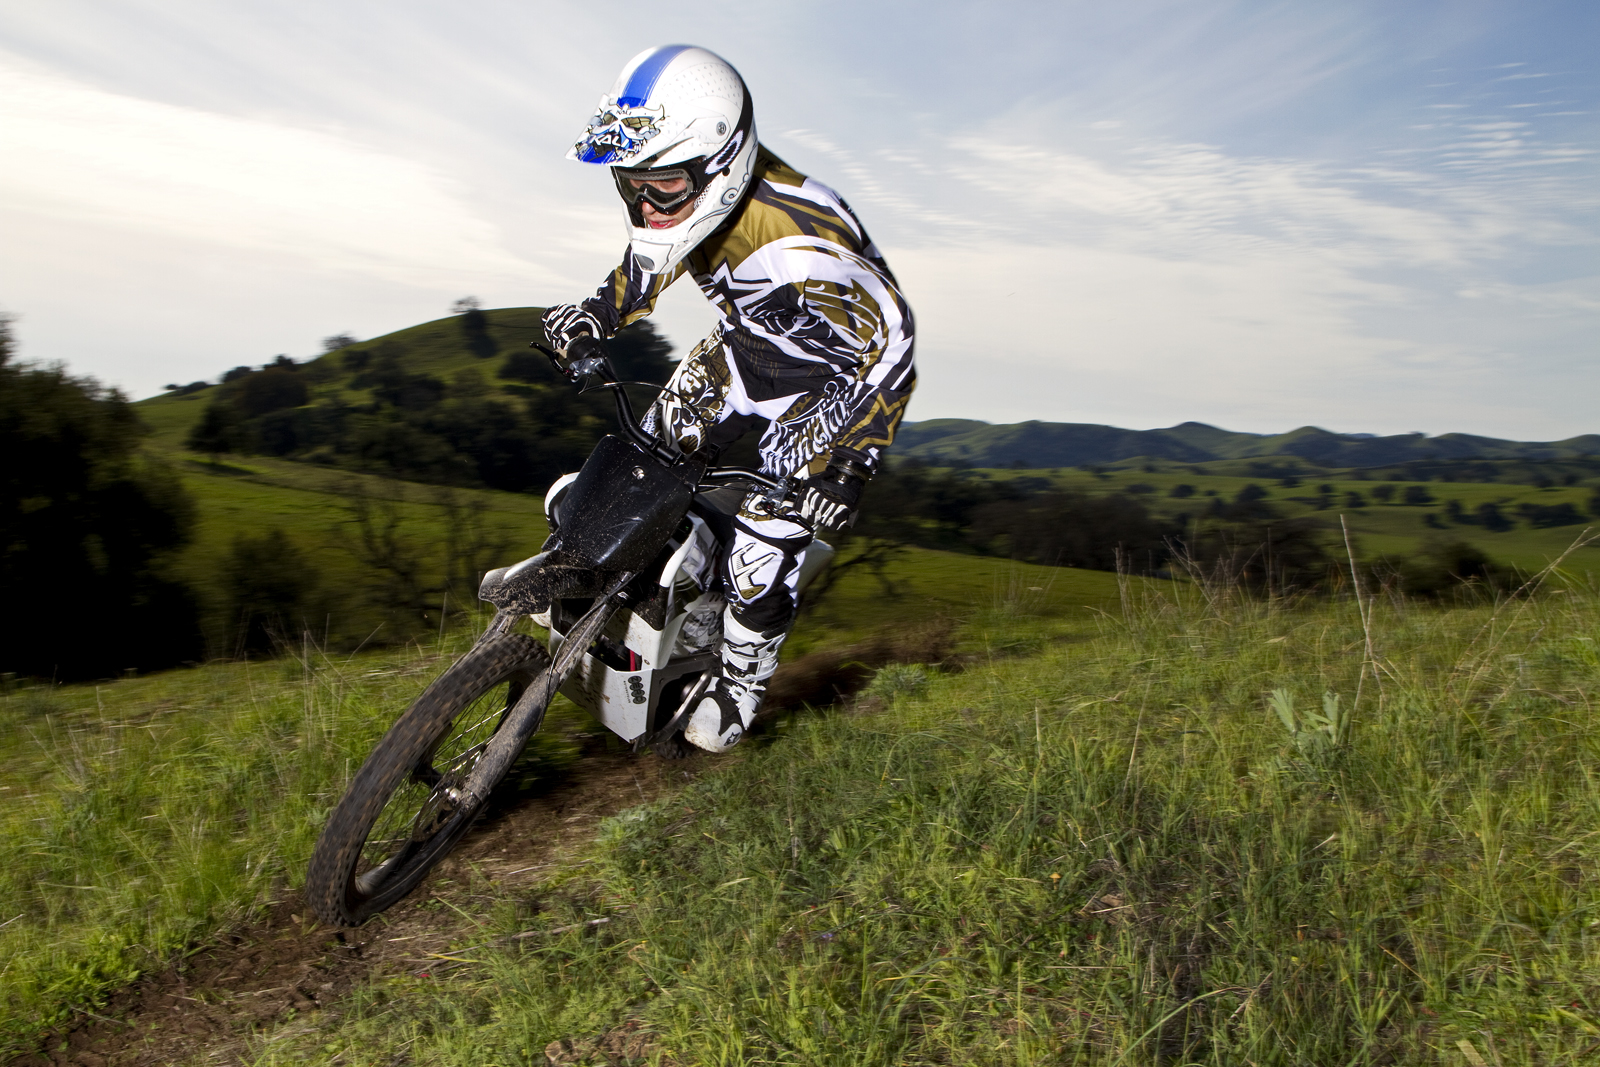 2010 Zero X Electric Motorcycle: Zaca Station - Single Track on Ridge